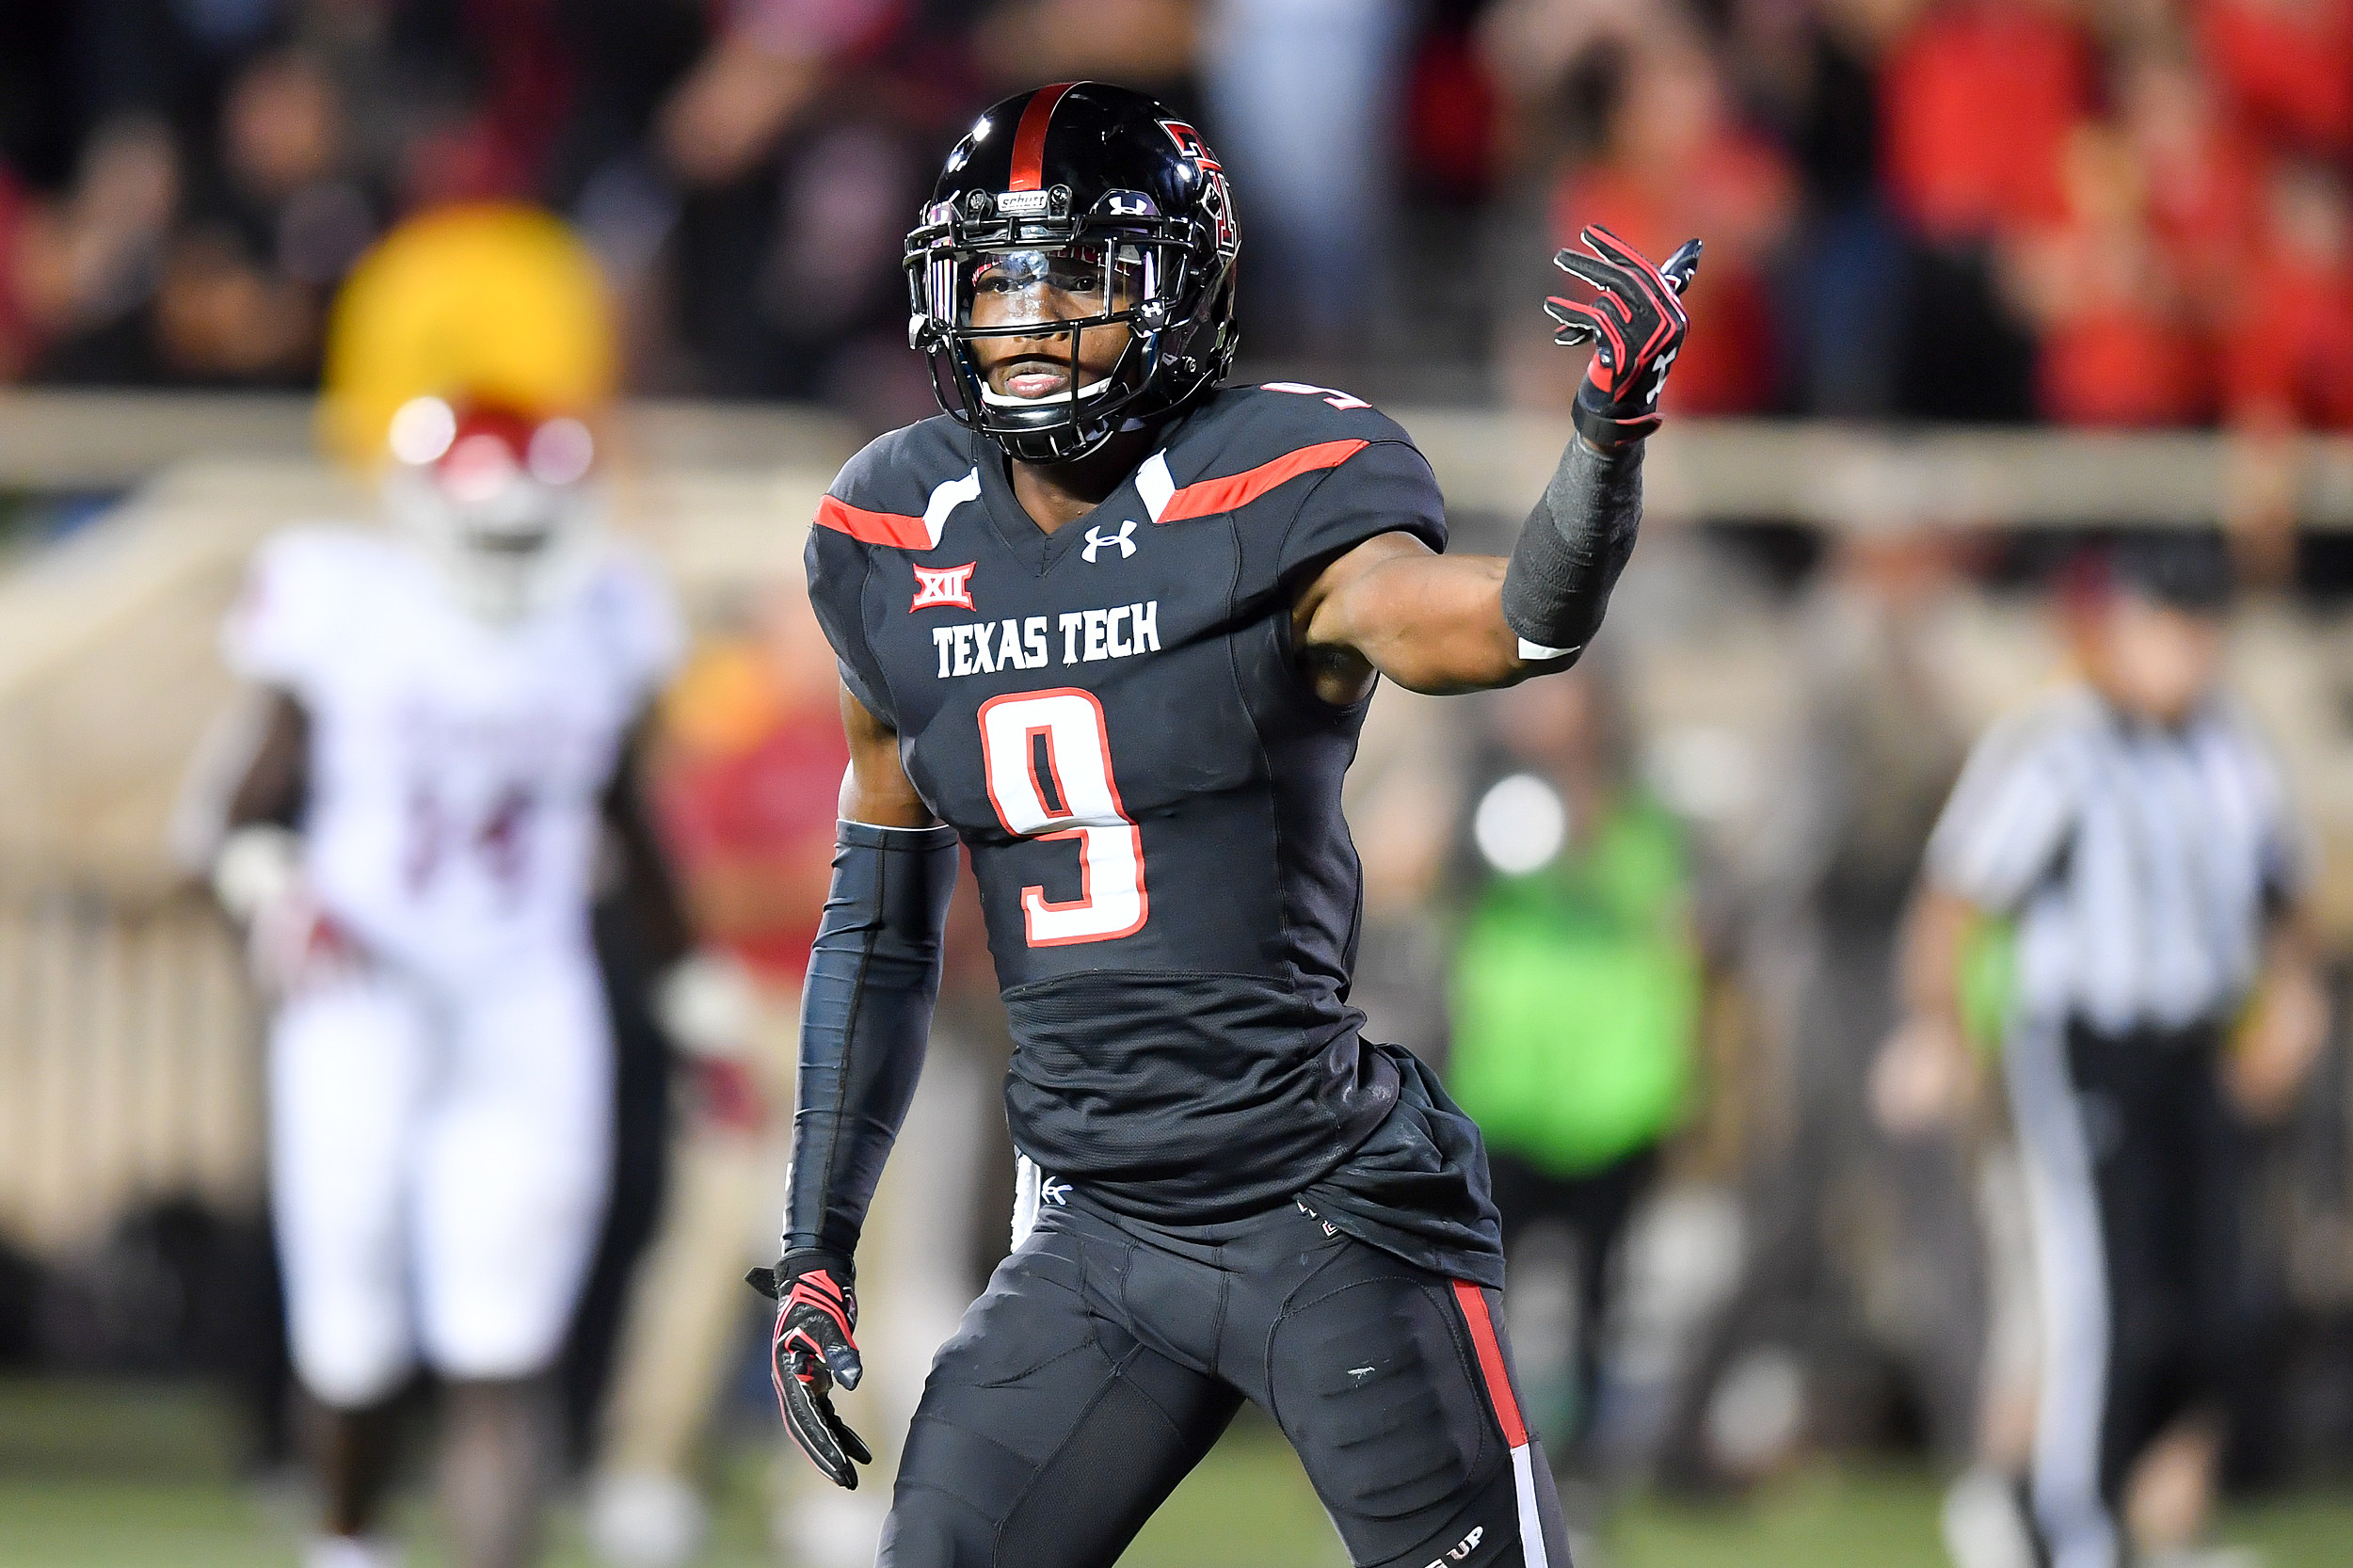 Former Texas Tech WR Jonathan Giles transferring to LSU